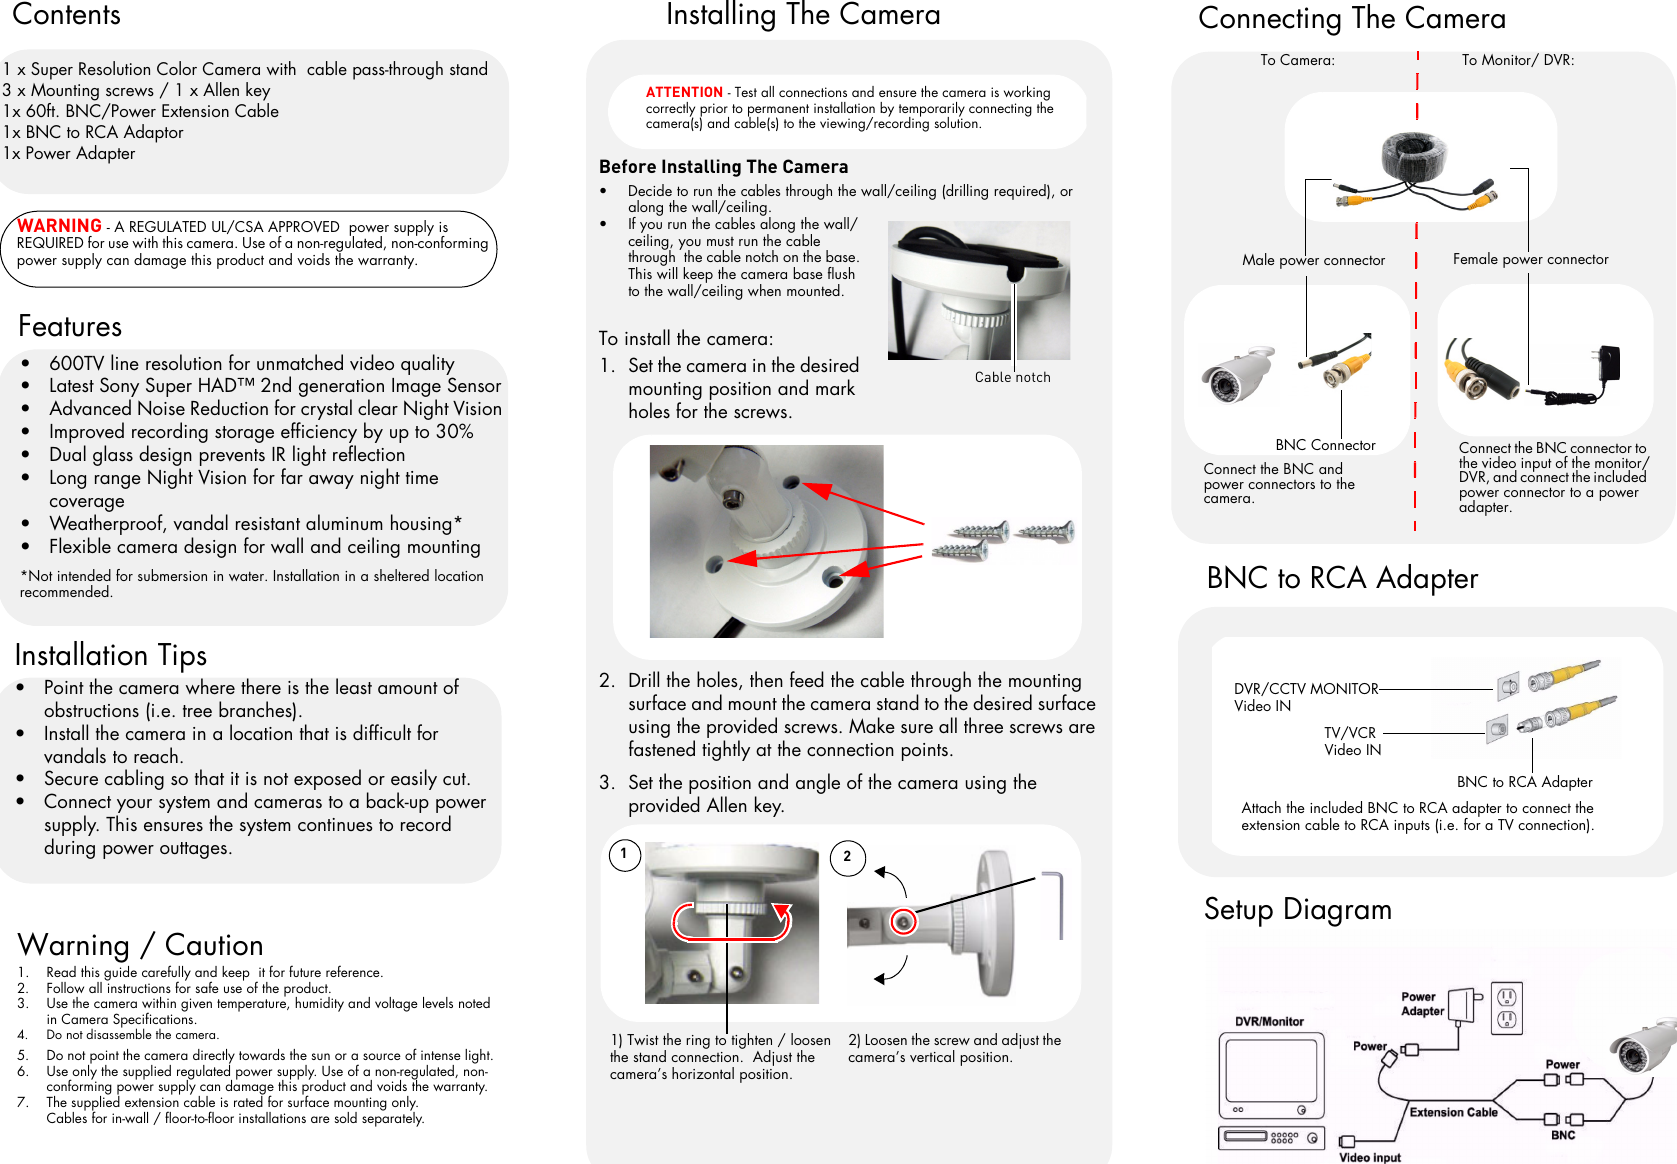 Lorex Outdoor Security Cameras With 600 Tvl 4 Pack Quick Start Guide Diagram Along How To Install A Bnc Connector Wiring Page 2 Of